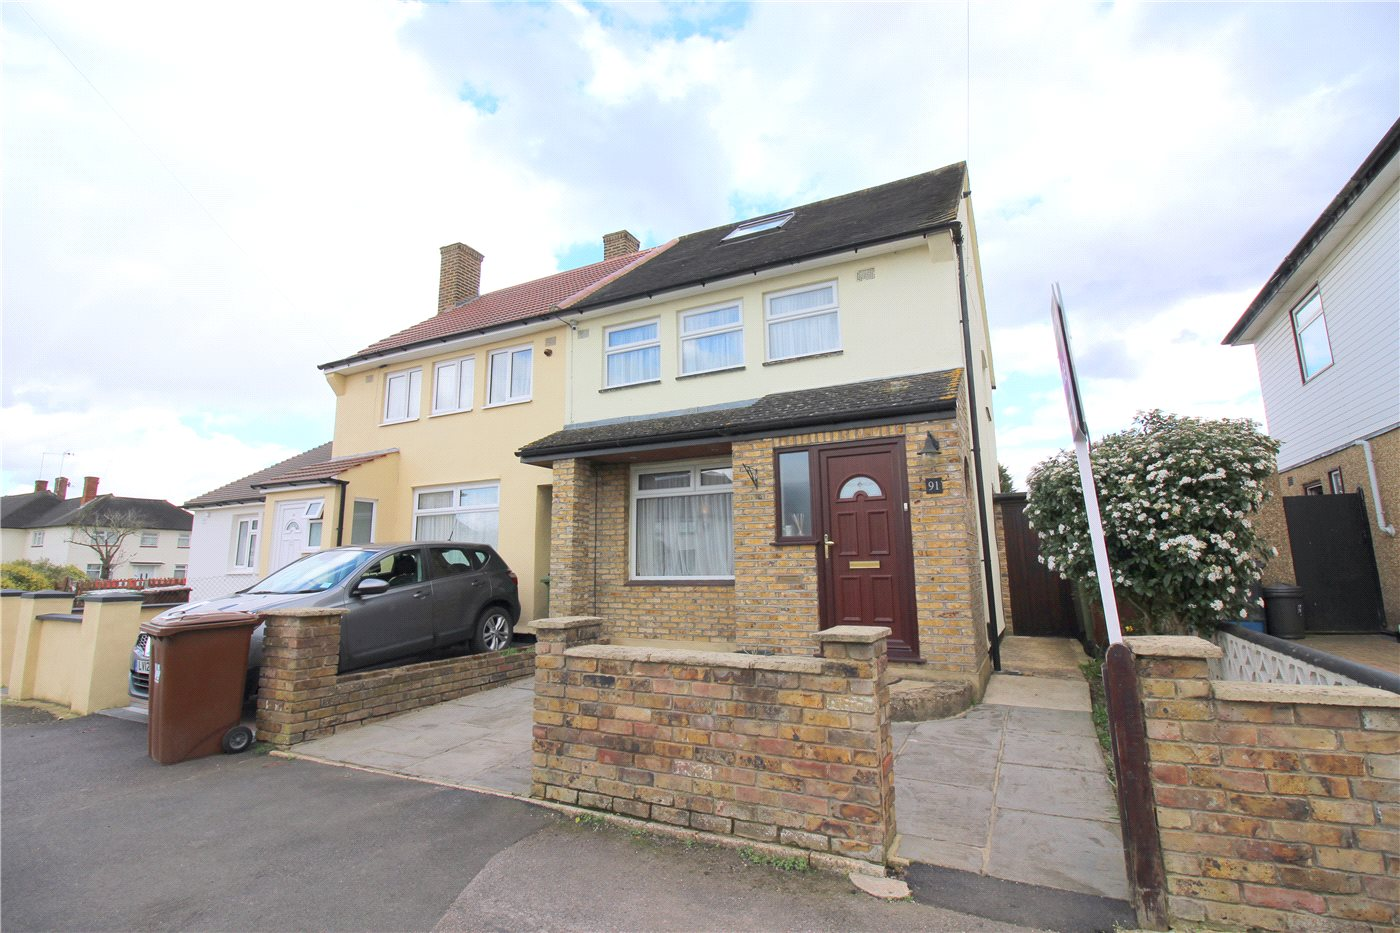 4 Bedrooms Semi Detached House for sale in Rossington Avenue, Borehamwood, Hertfordshire, WD6